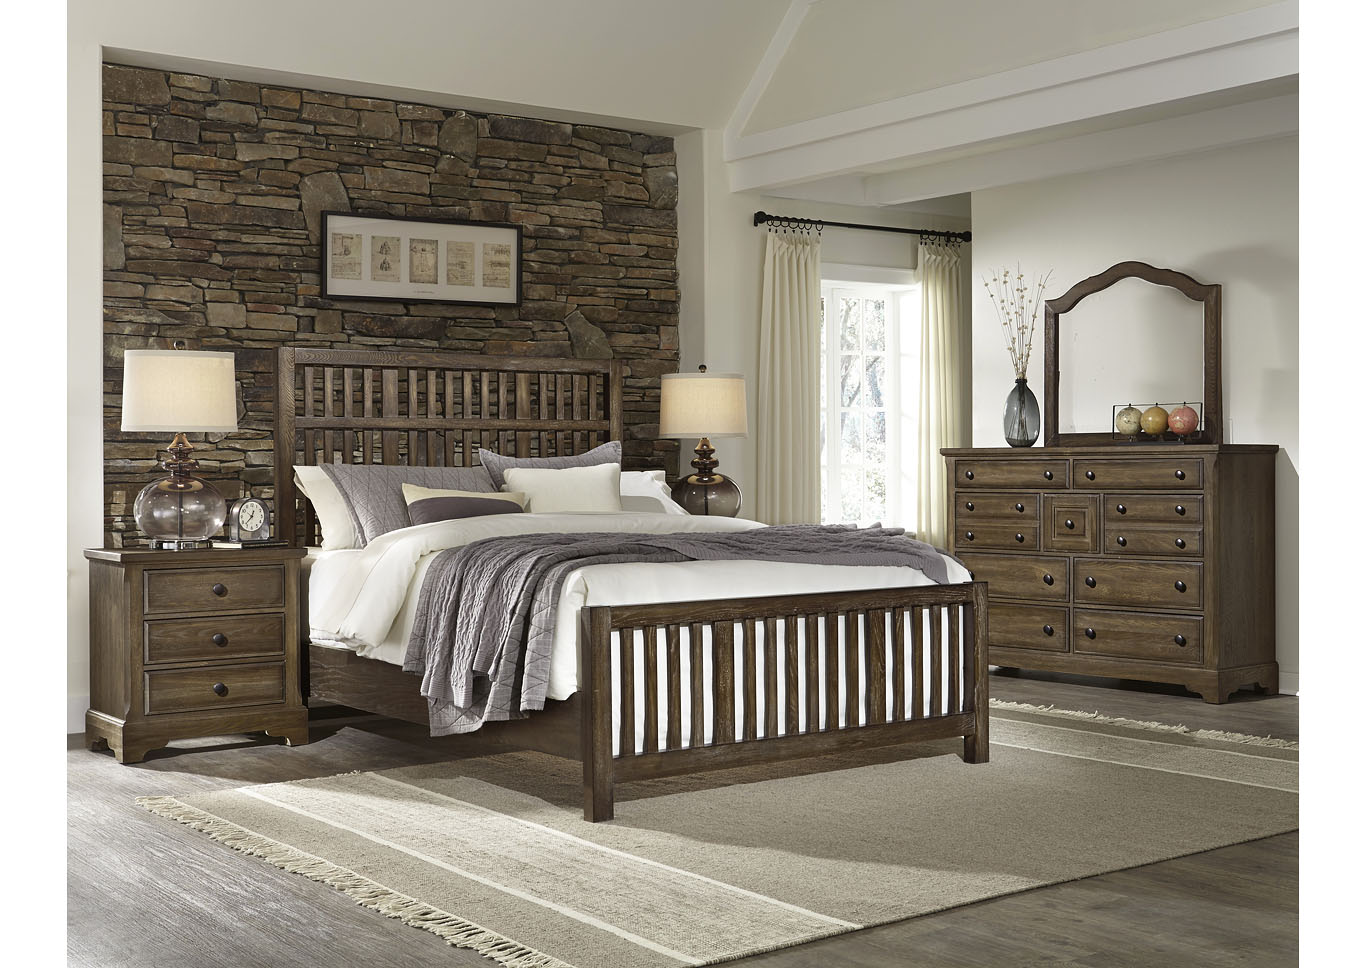 106 - Artisan Choices Dark Oak Villa Triple Dresser - 9 Drawer,Vaughan-Bassett